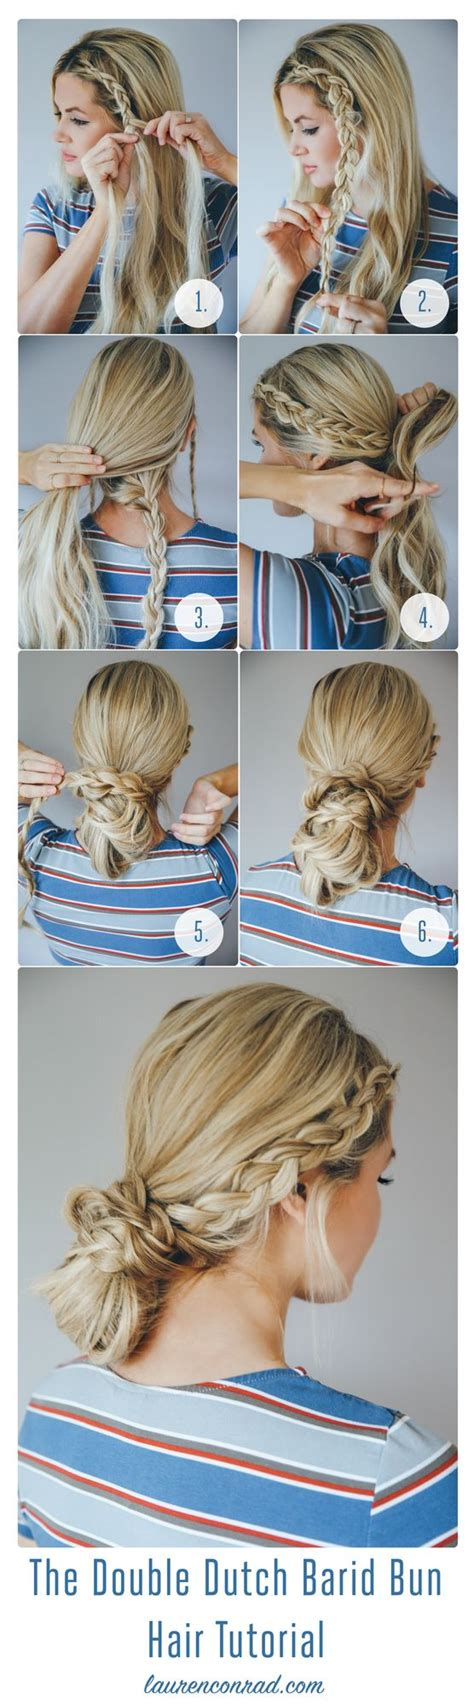 easy hairstyles that only use 3 packs of yaki weave boxbraids hair how to the double dutch braid bun lauren conrad